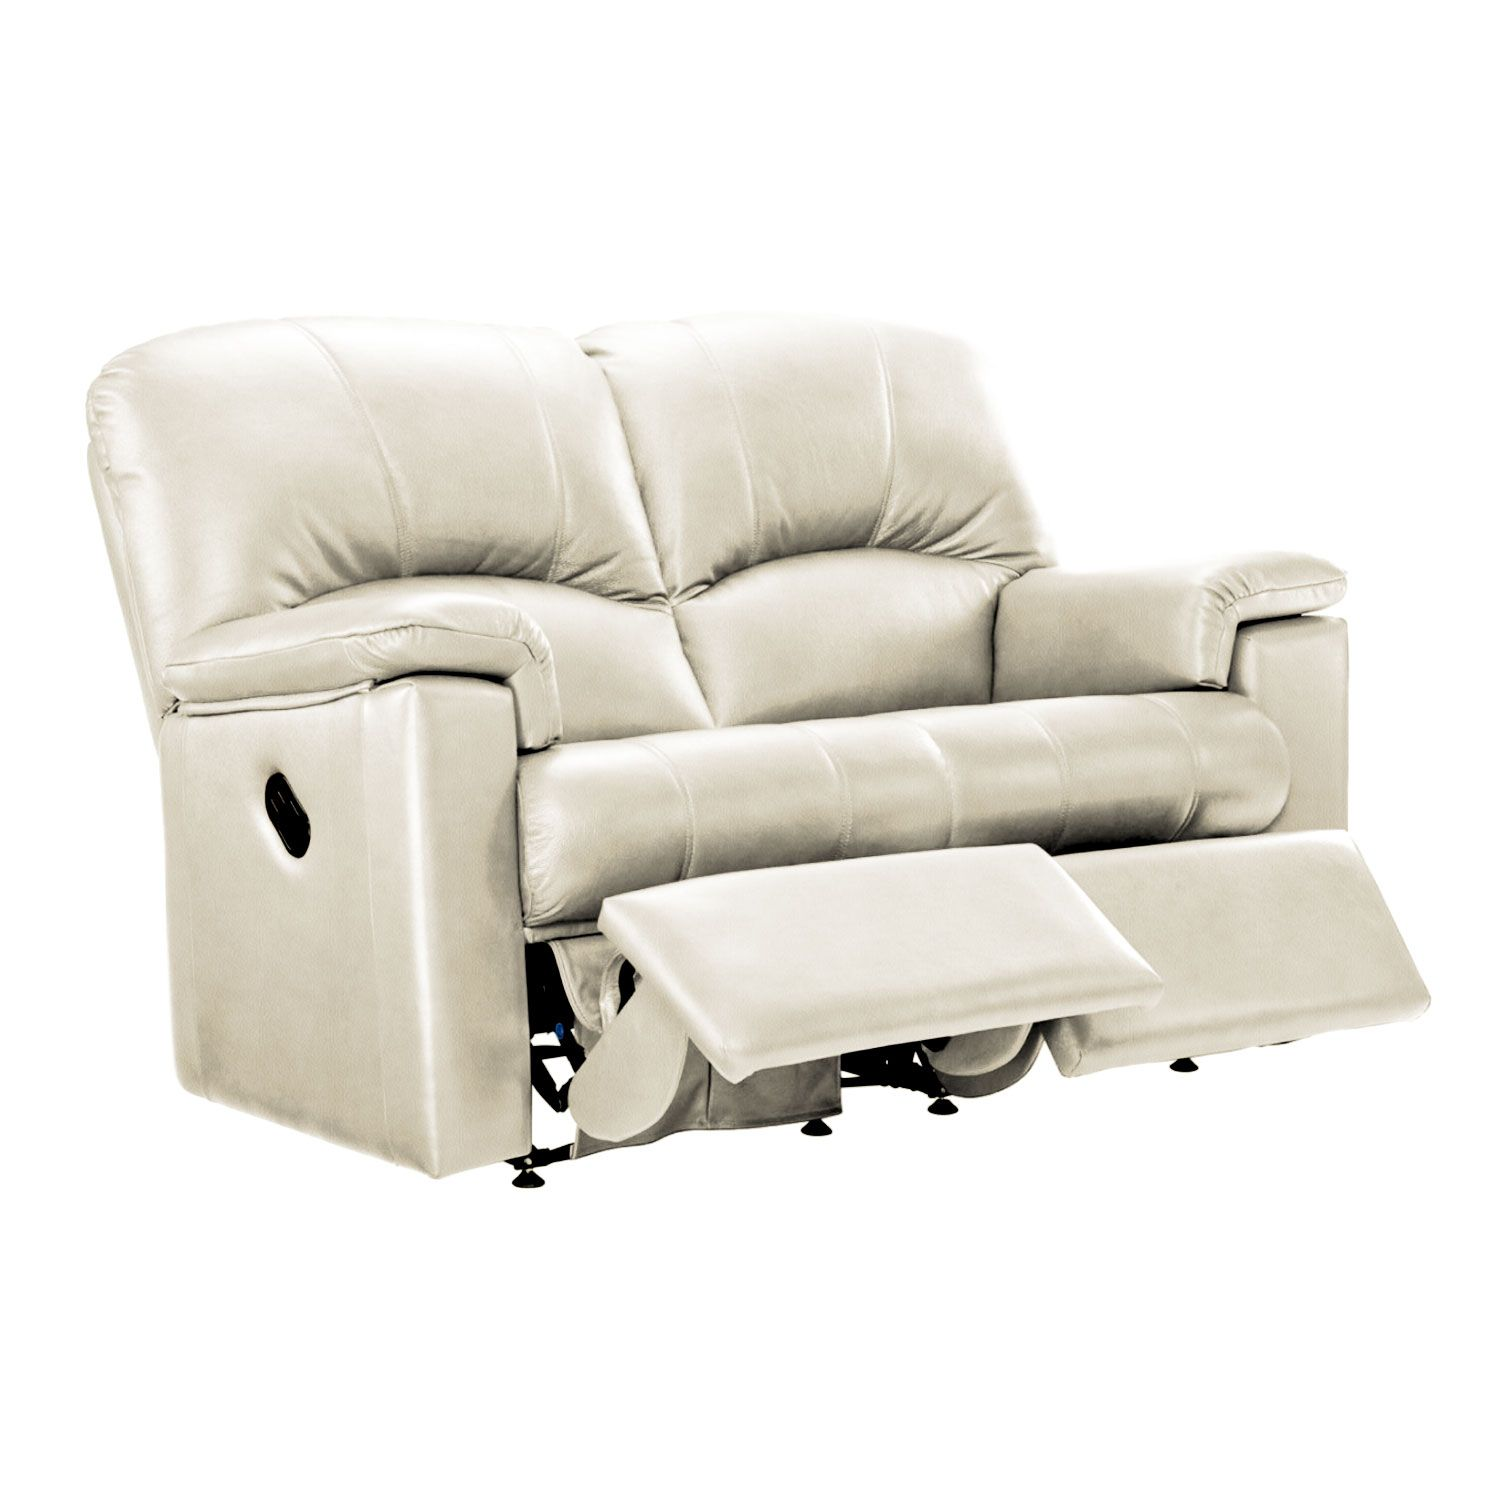 Image of G Plan Chloe 2 Seater Double Manual Recliner Leather Sofa